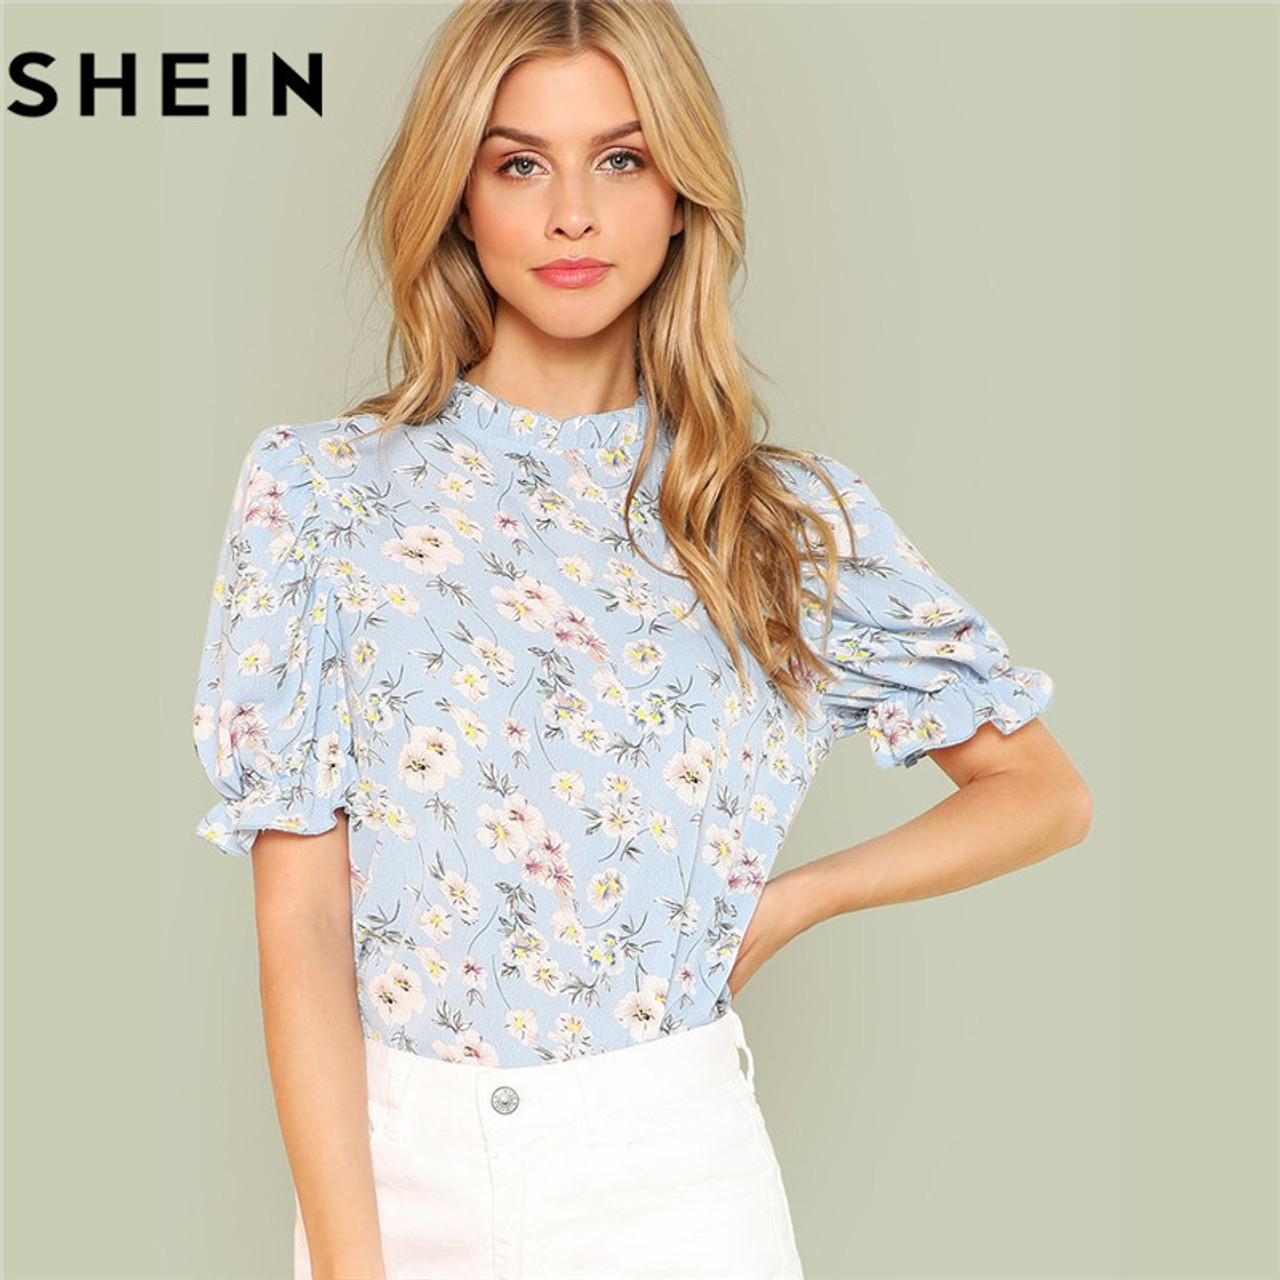 0ea33064af SHEIN Office Lady Tops Ruffle Floral Blue Blouses 2018 New Women Summer  Casual Short Puff Sleeve ...